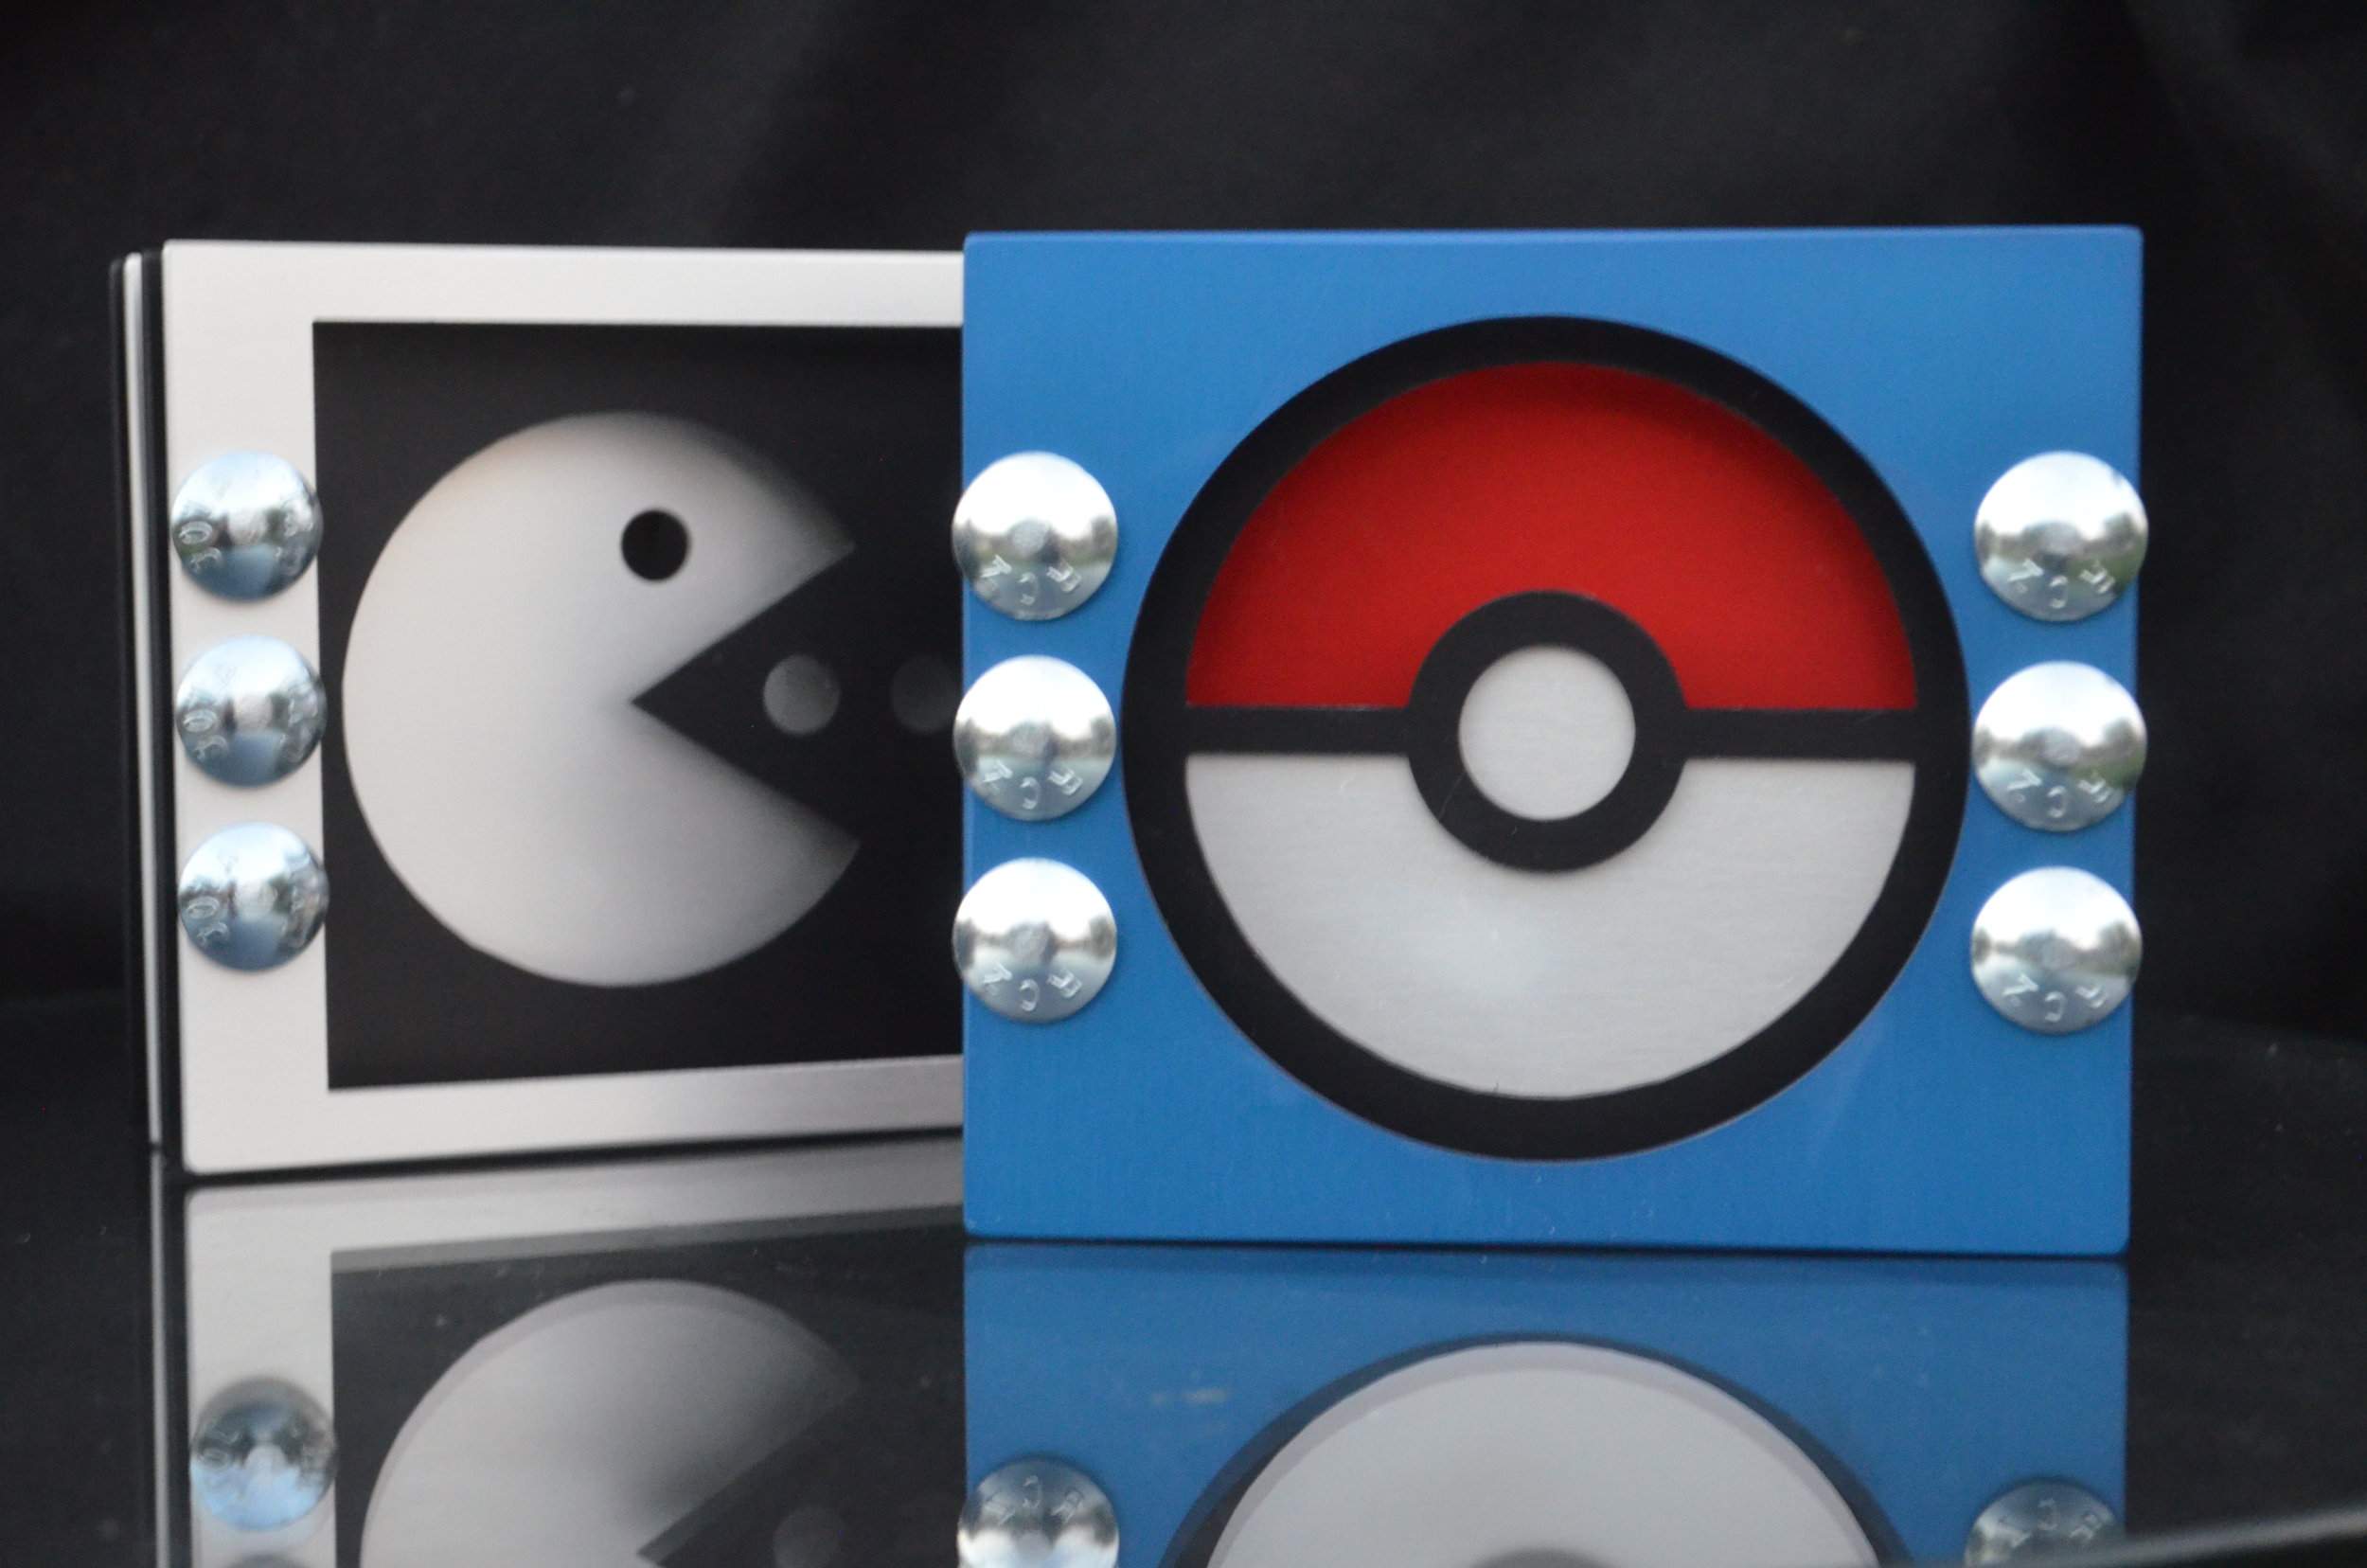 belveal-pokemon-pacman-Game-art-Icons.JP-